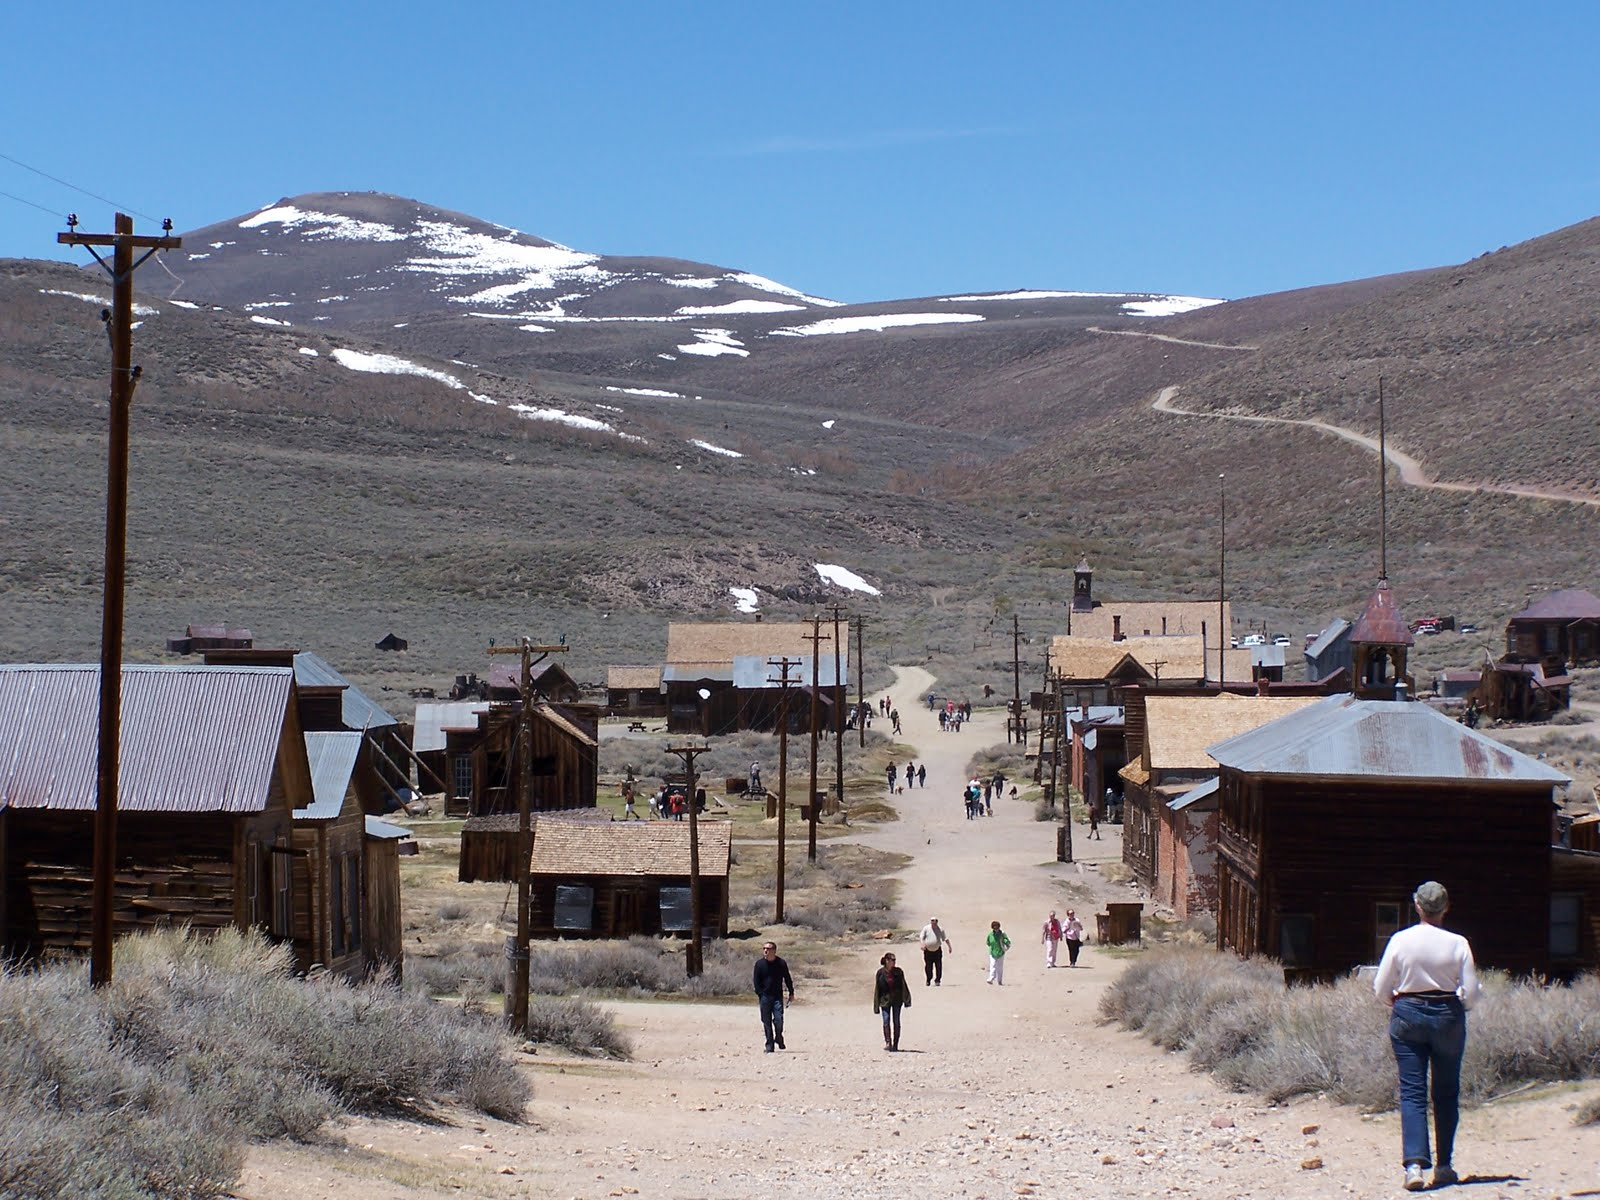 Importance Of Place Thoughts On Ghost Towns